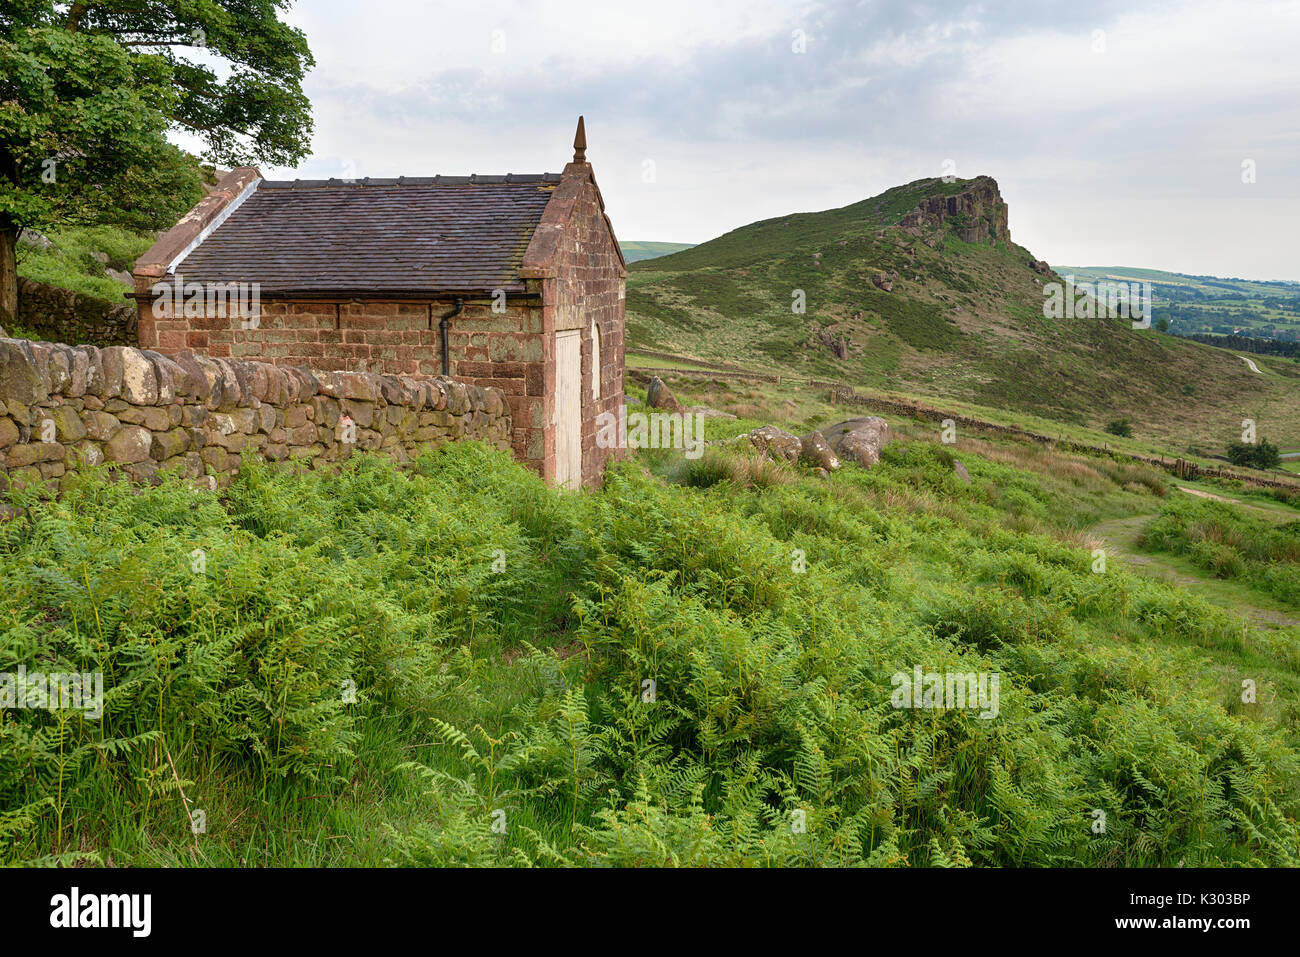 An old stone hut on the edge of The Roaches in the Peak District National Park in Staffodshire, looking out at the peak of Hen Cloud - Stock Image